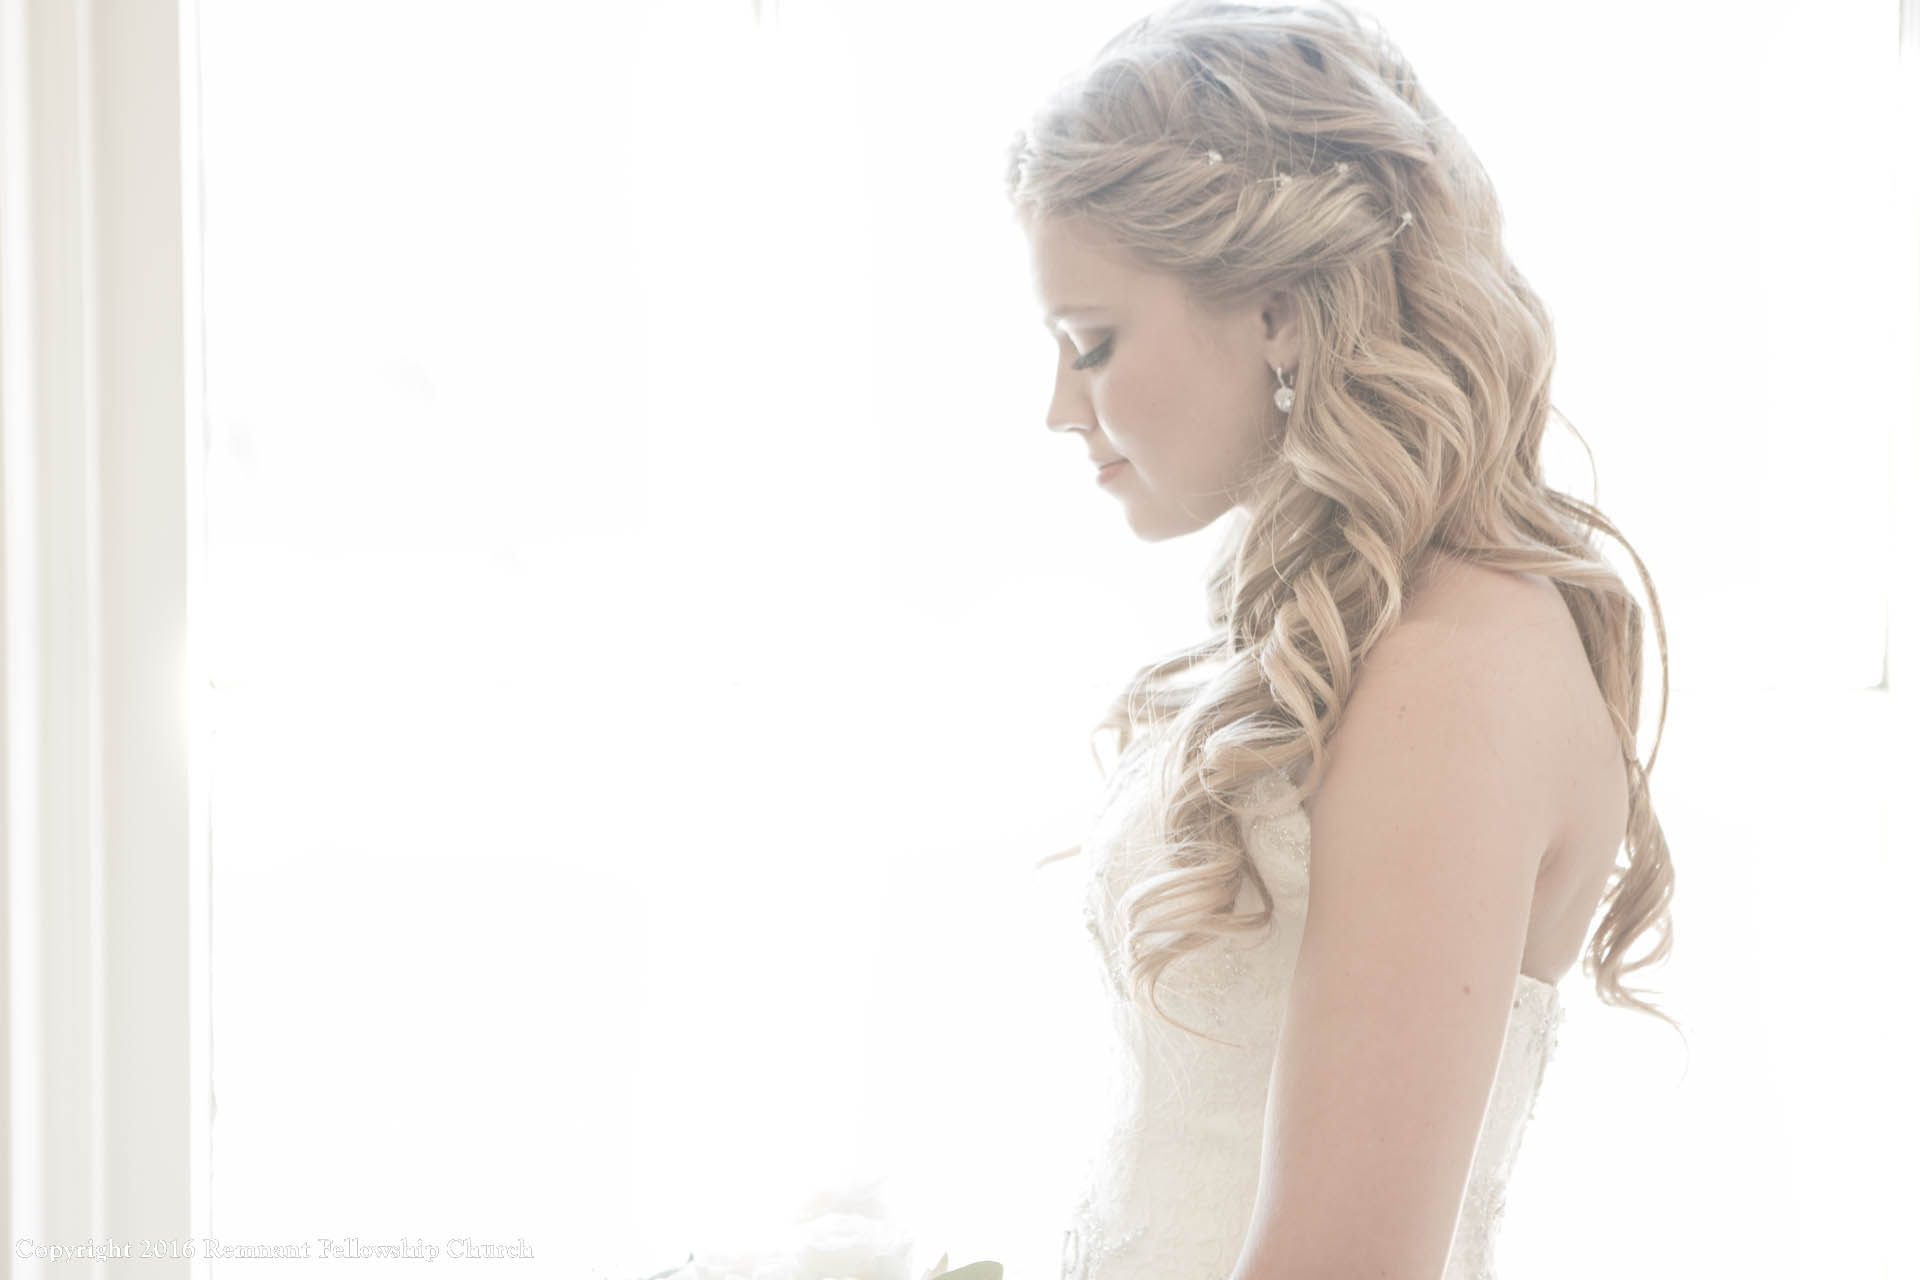 Remnant-Fellowship-Martin-Jost-Wedding-bride-hair